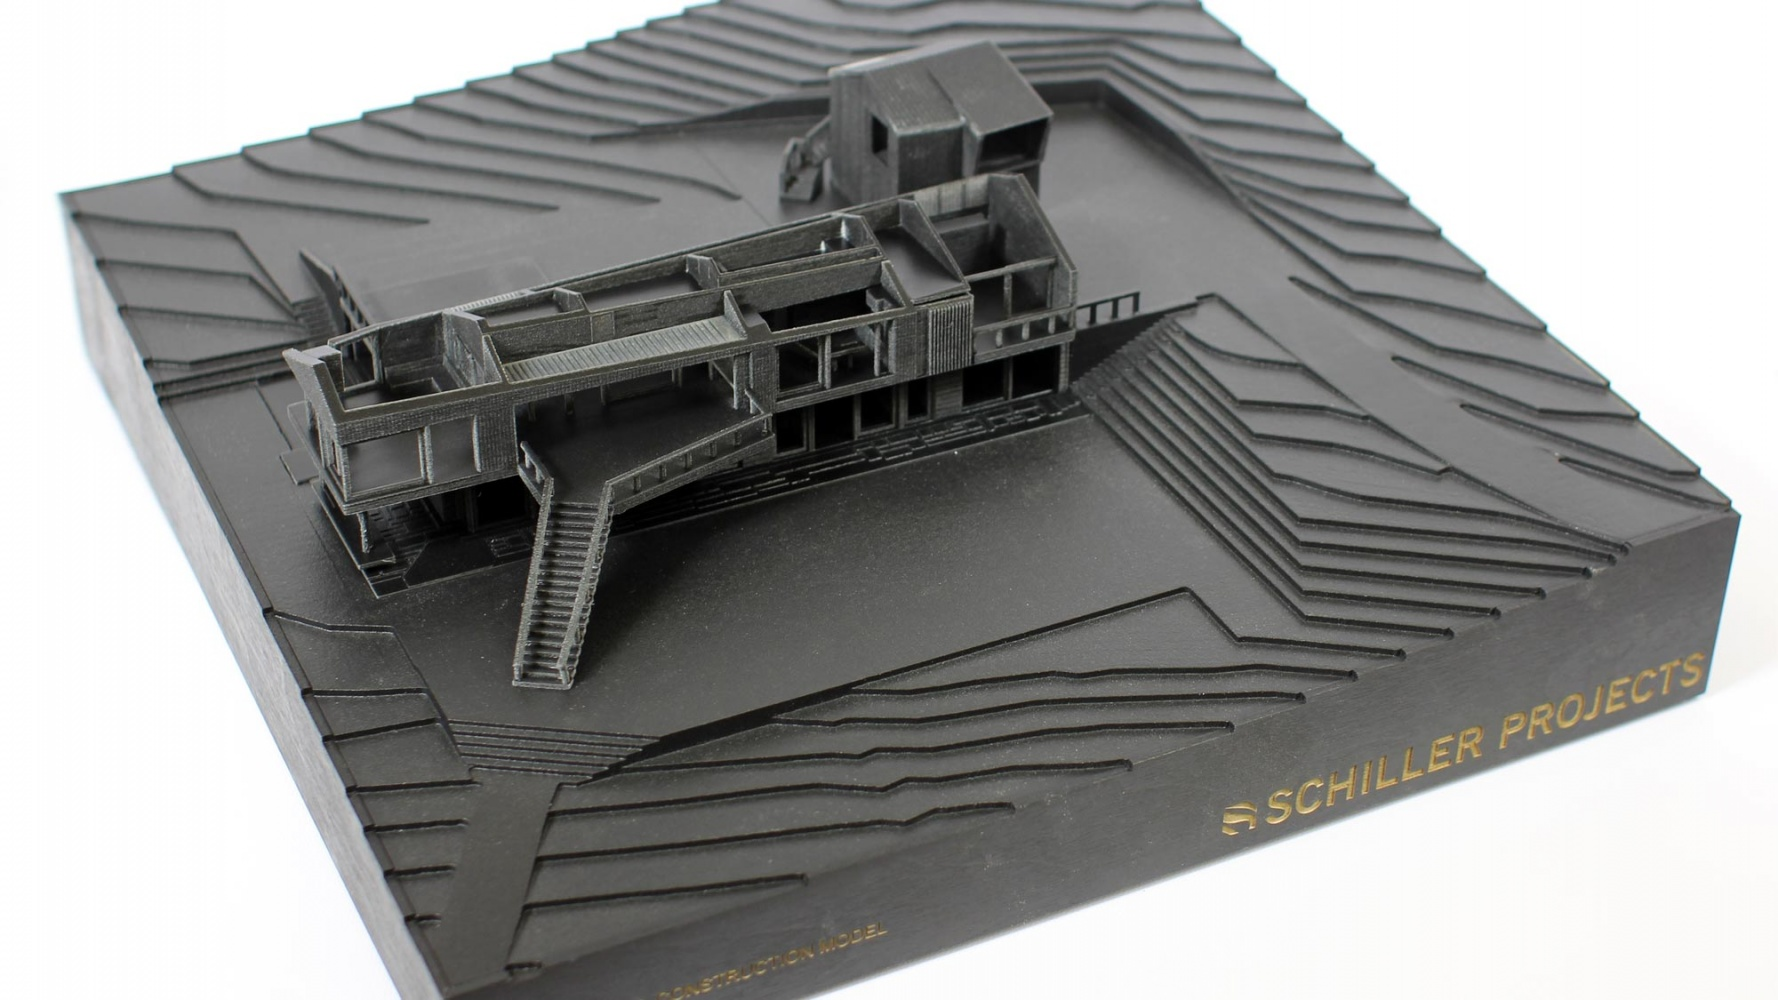 Schiller projects take apart residential 3d print lgm for 3d printer house for sale